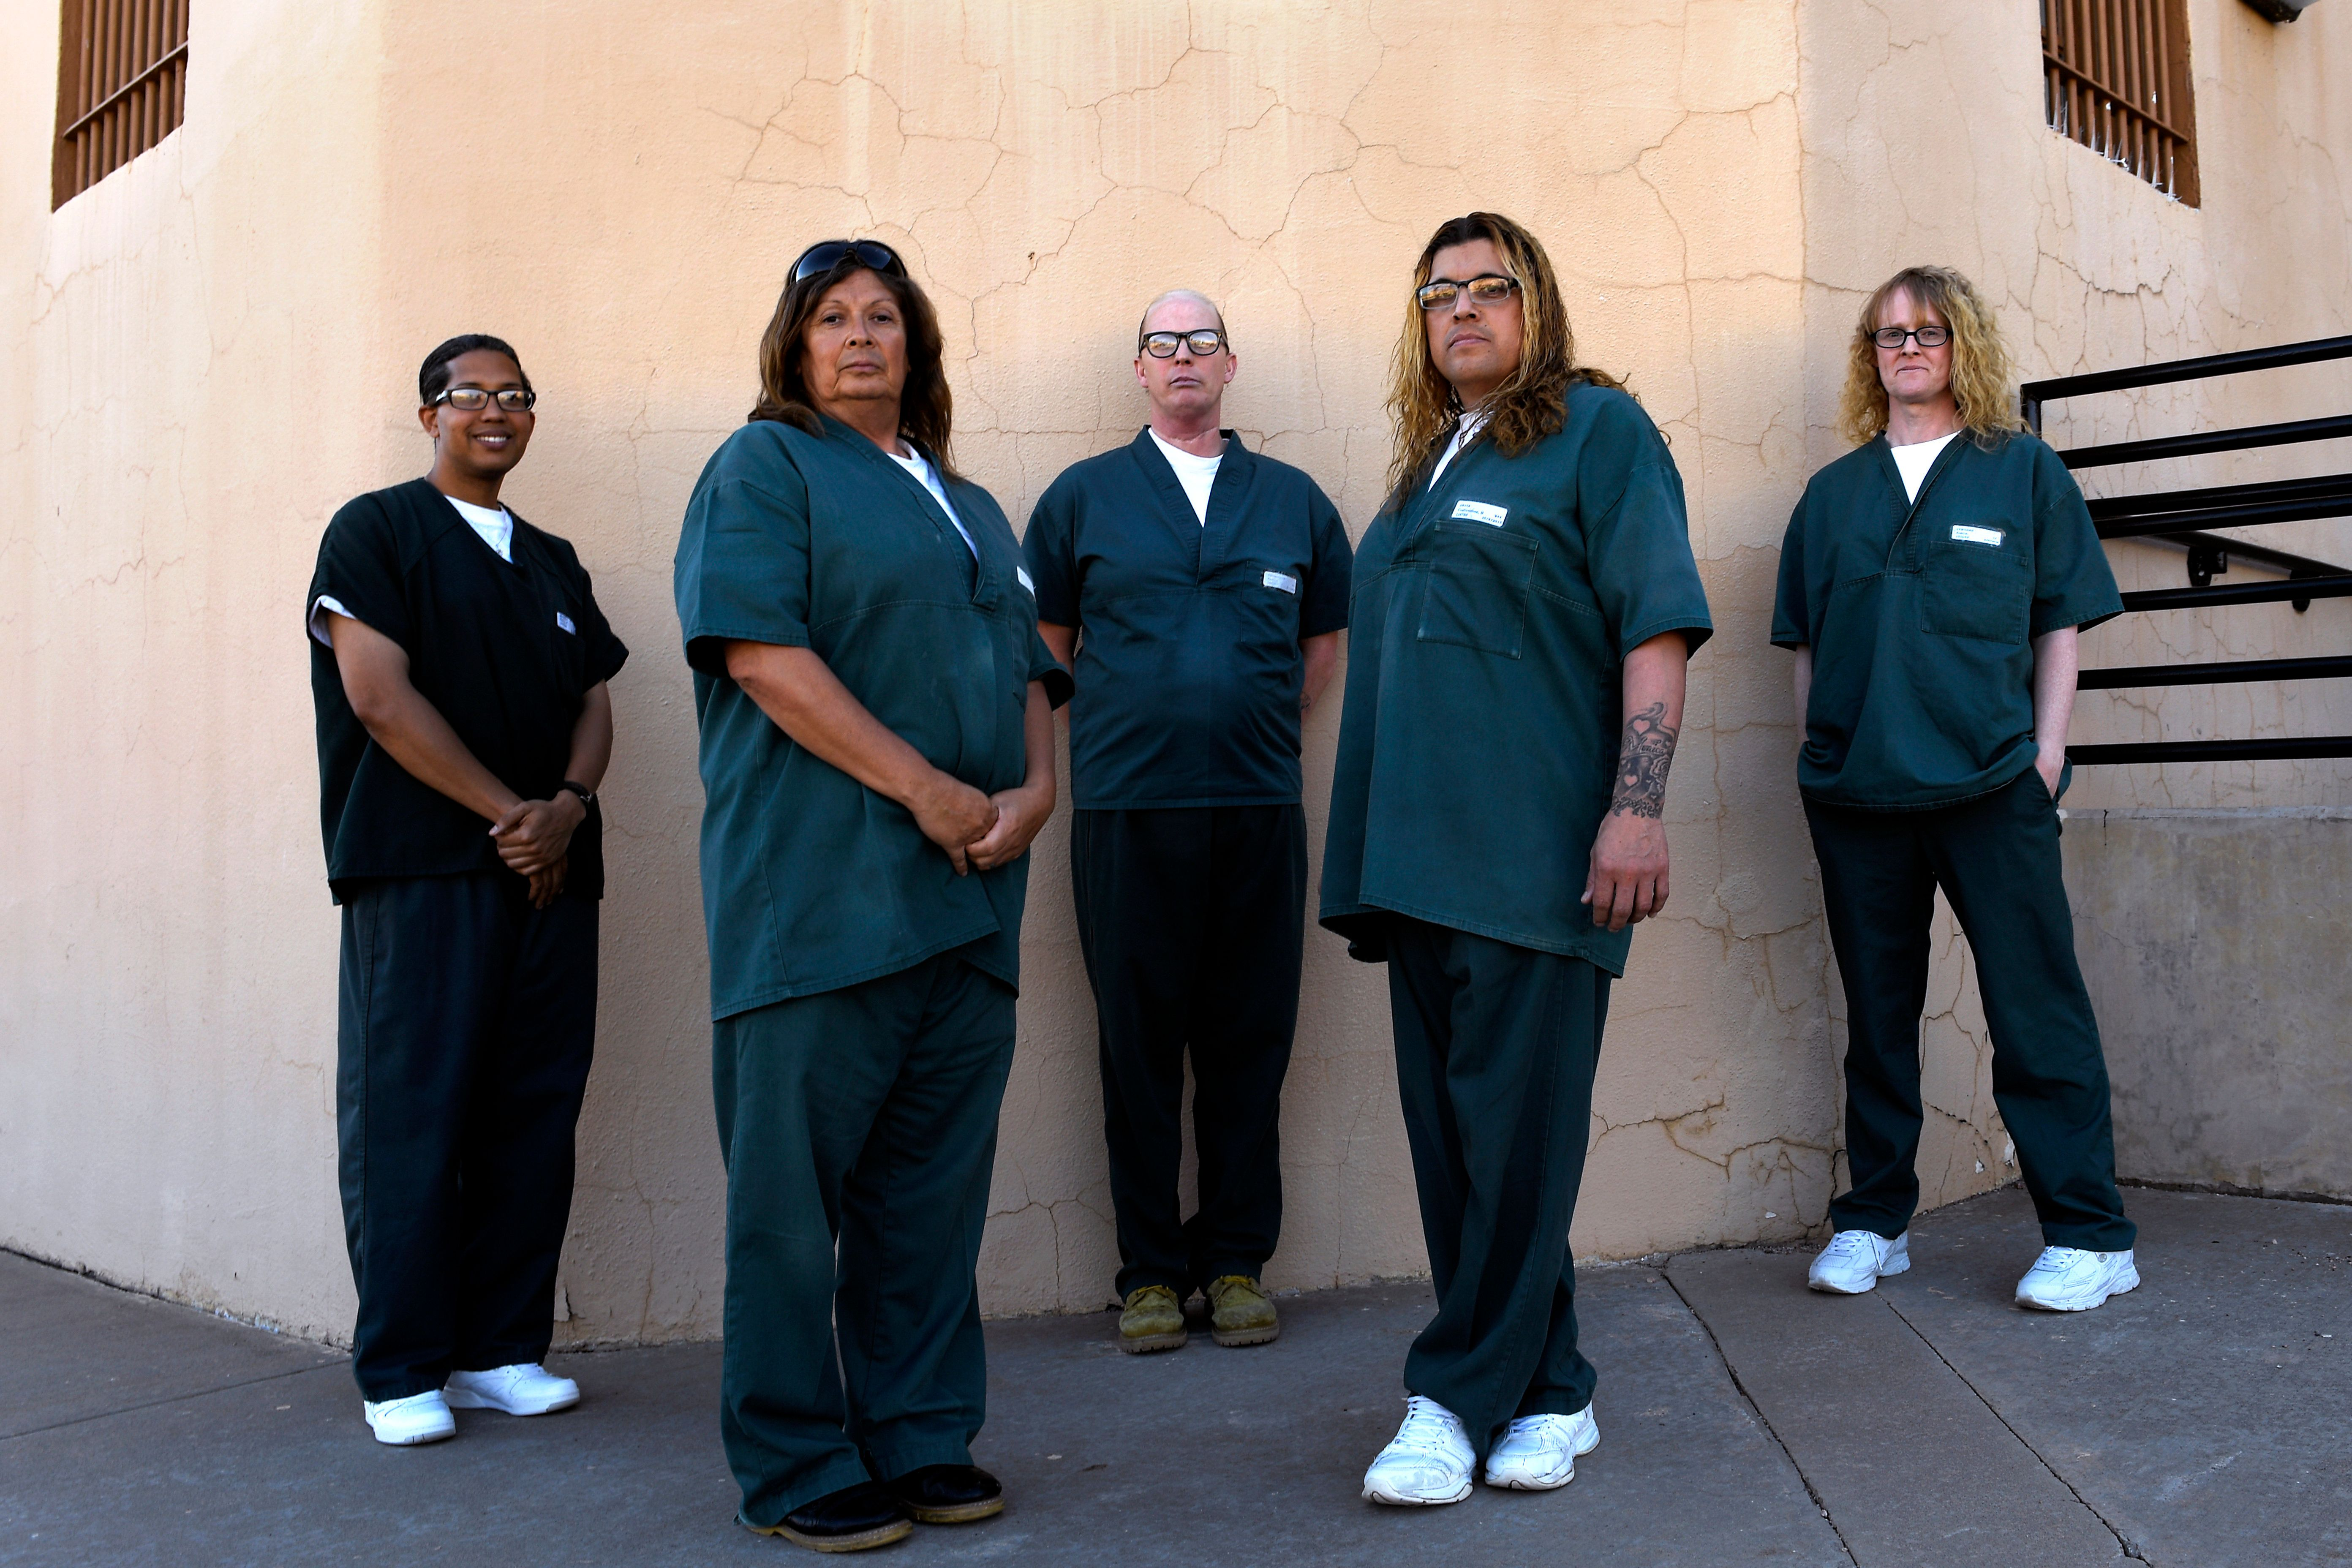 CANON CITY, CO - APRIL 4: Transgender inmate's (from left) 'Taliyah' Dario Murphy 34, 'Jessica' Fidencio Tuitron 58, 'Paula' Paul Thompson 44, 'Monica' Cuahutemoe Anaya 44 and Acacia Lyndarr 39,at the Colorado Territorial Correctional Facility in Cañon City. May 4, 2018 Cañon City, CO (Photo by Joe Amon/The Denver Post via Getty Images)